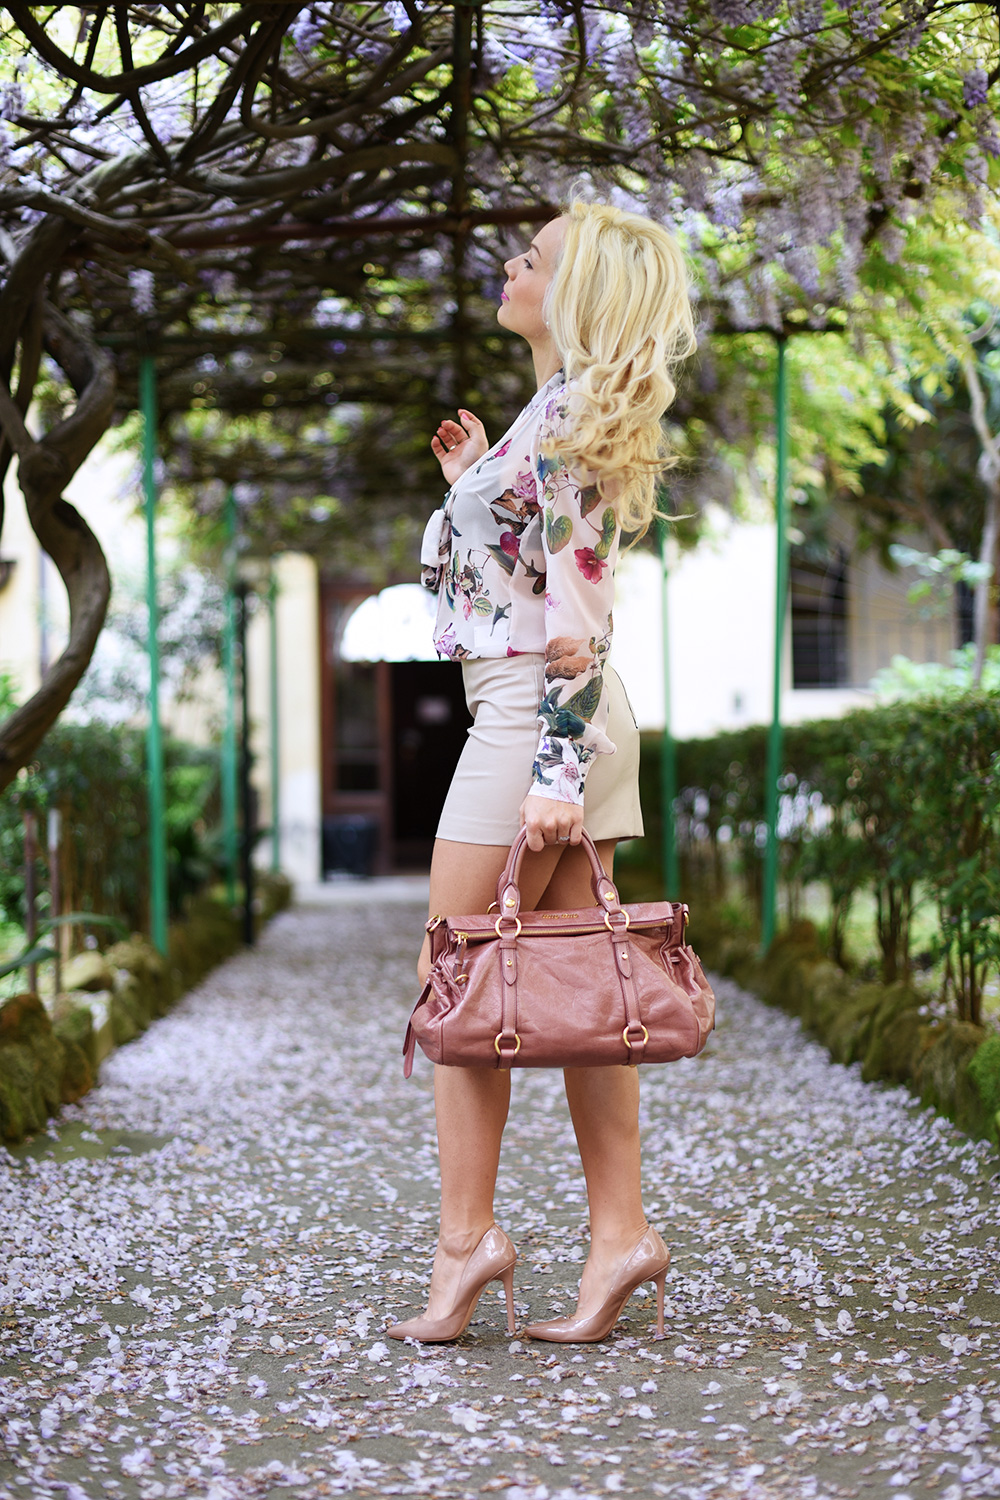 Ventifive abbigliamento, camicia a fiori, gonna in ecopelle, come indossare una mini gonna in pelle, look femminili primavera, Miu Miu bags - It-Girl by Eleonora Petrella